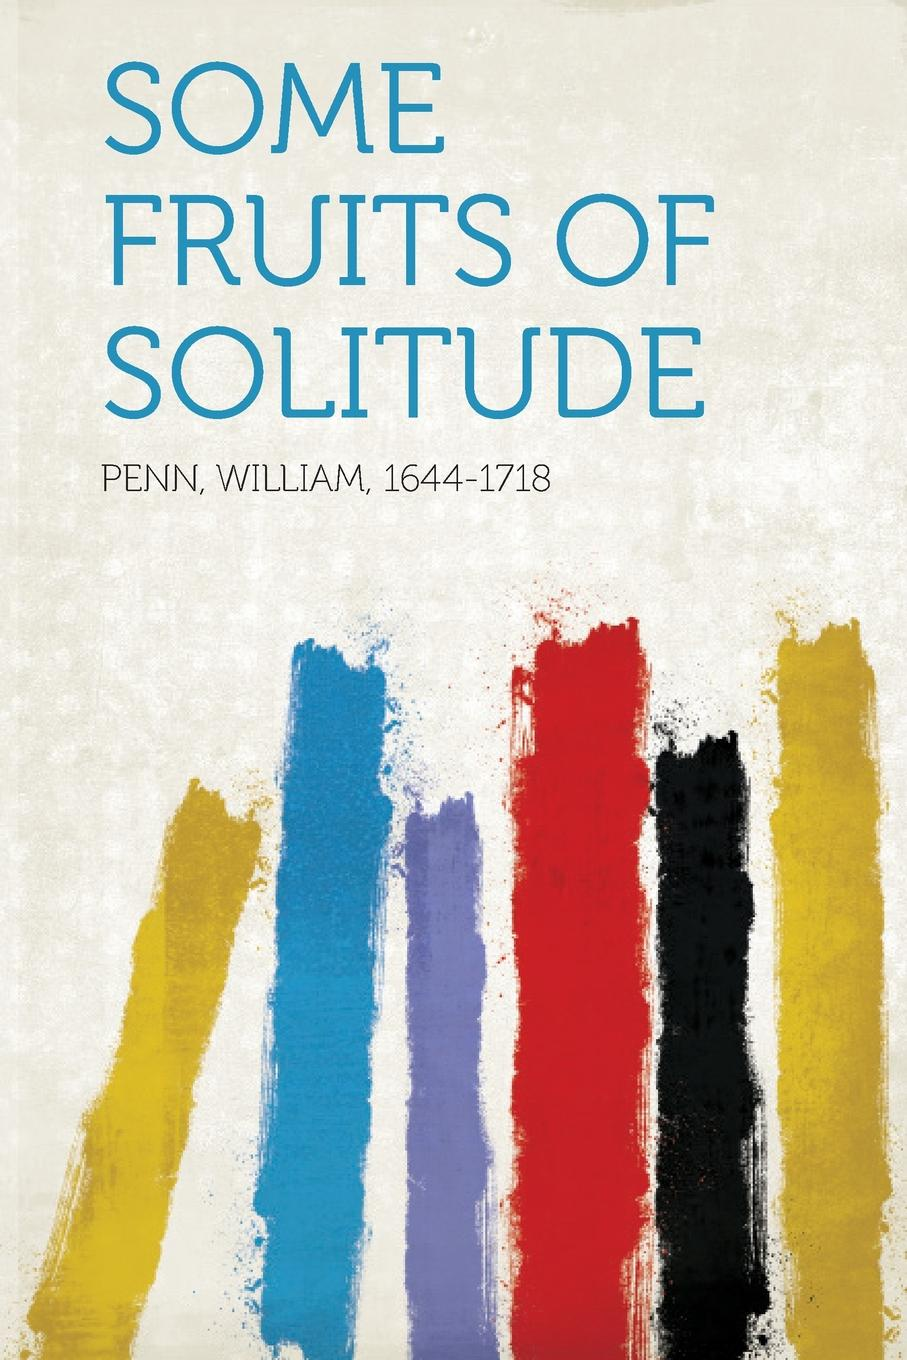 Penn William 1644-1718 Some Fruits of Solitude some fruits of solitude more fruits of solitude